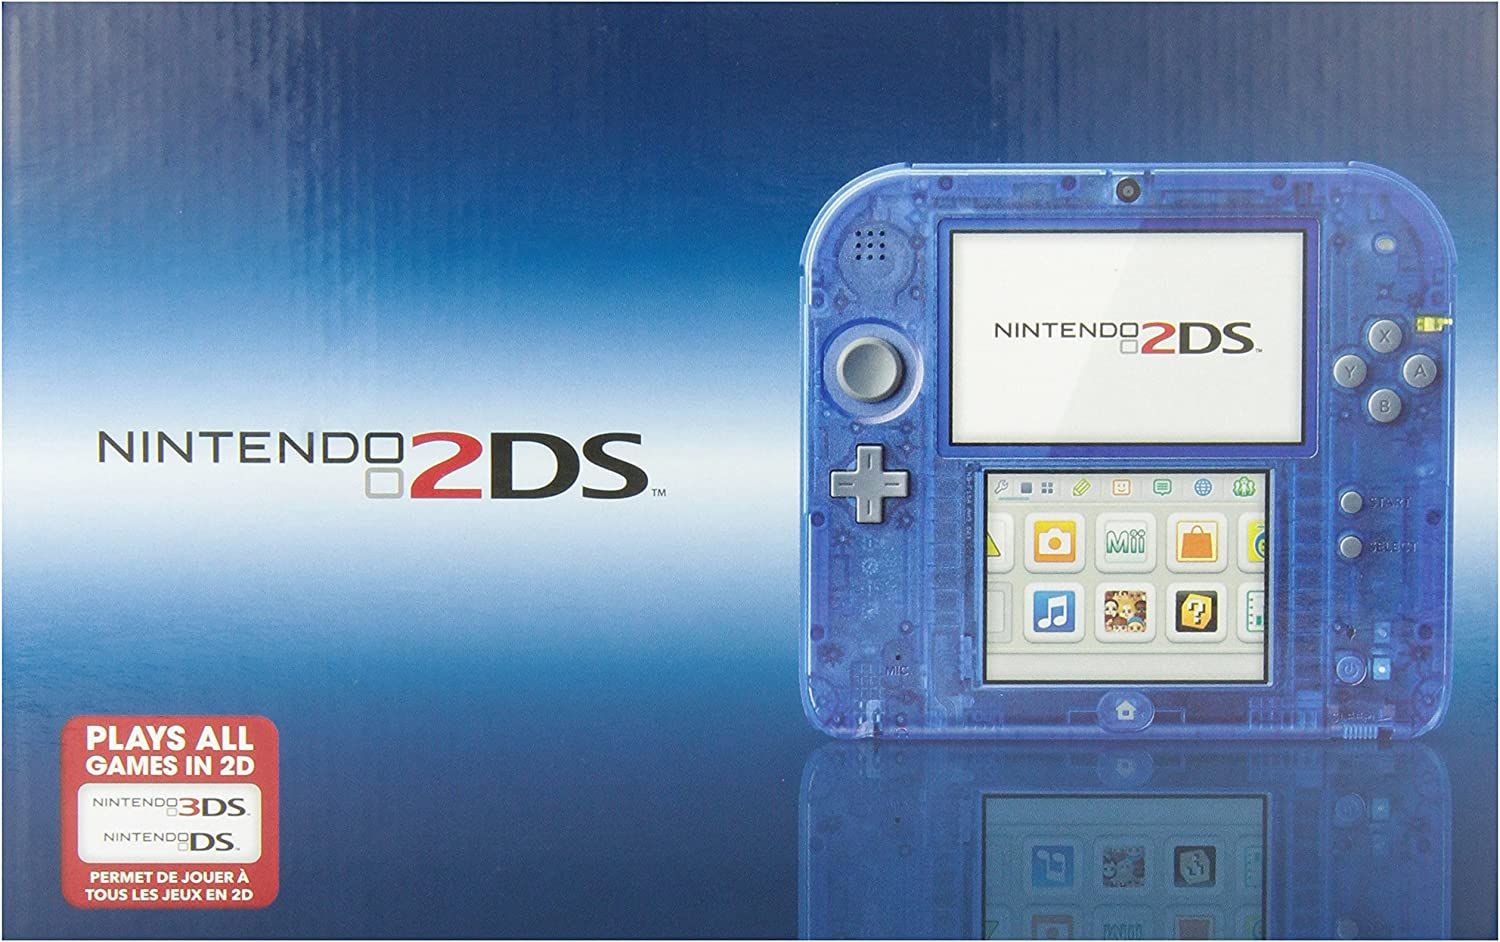 Amazon.com: Nintendo 2DS, color azul translúcido: Video Games